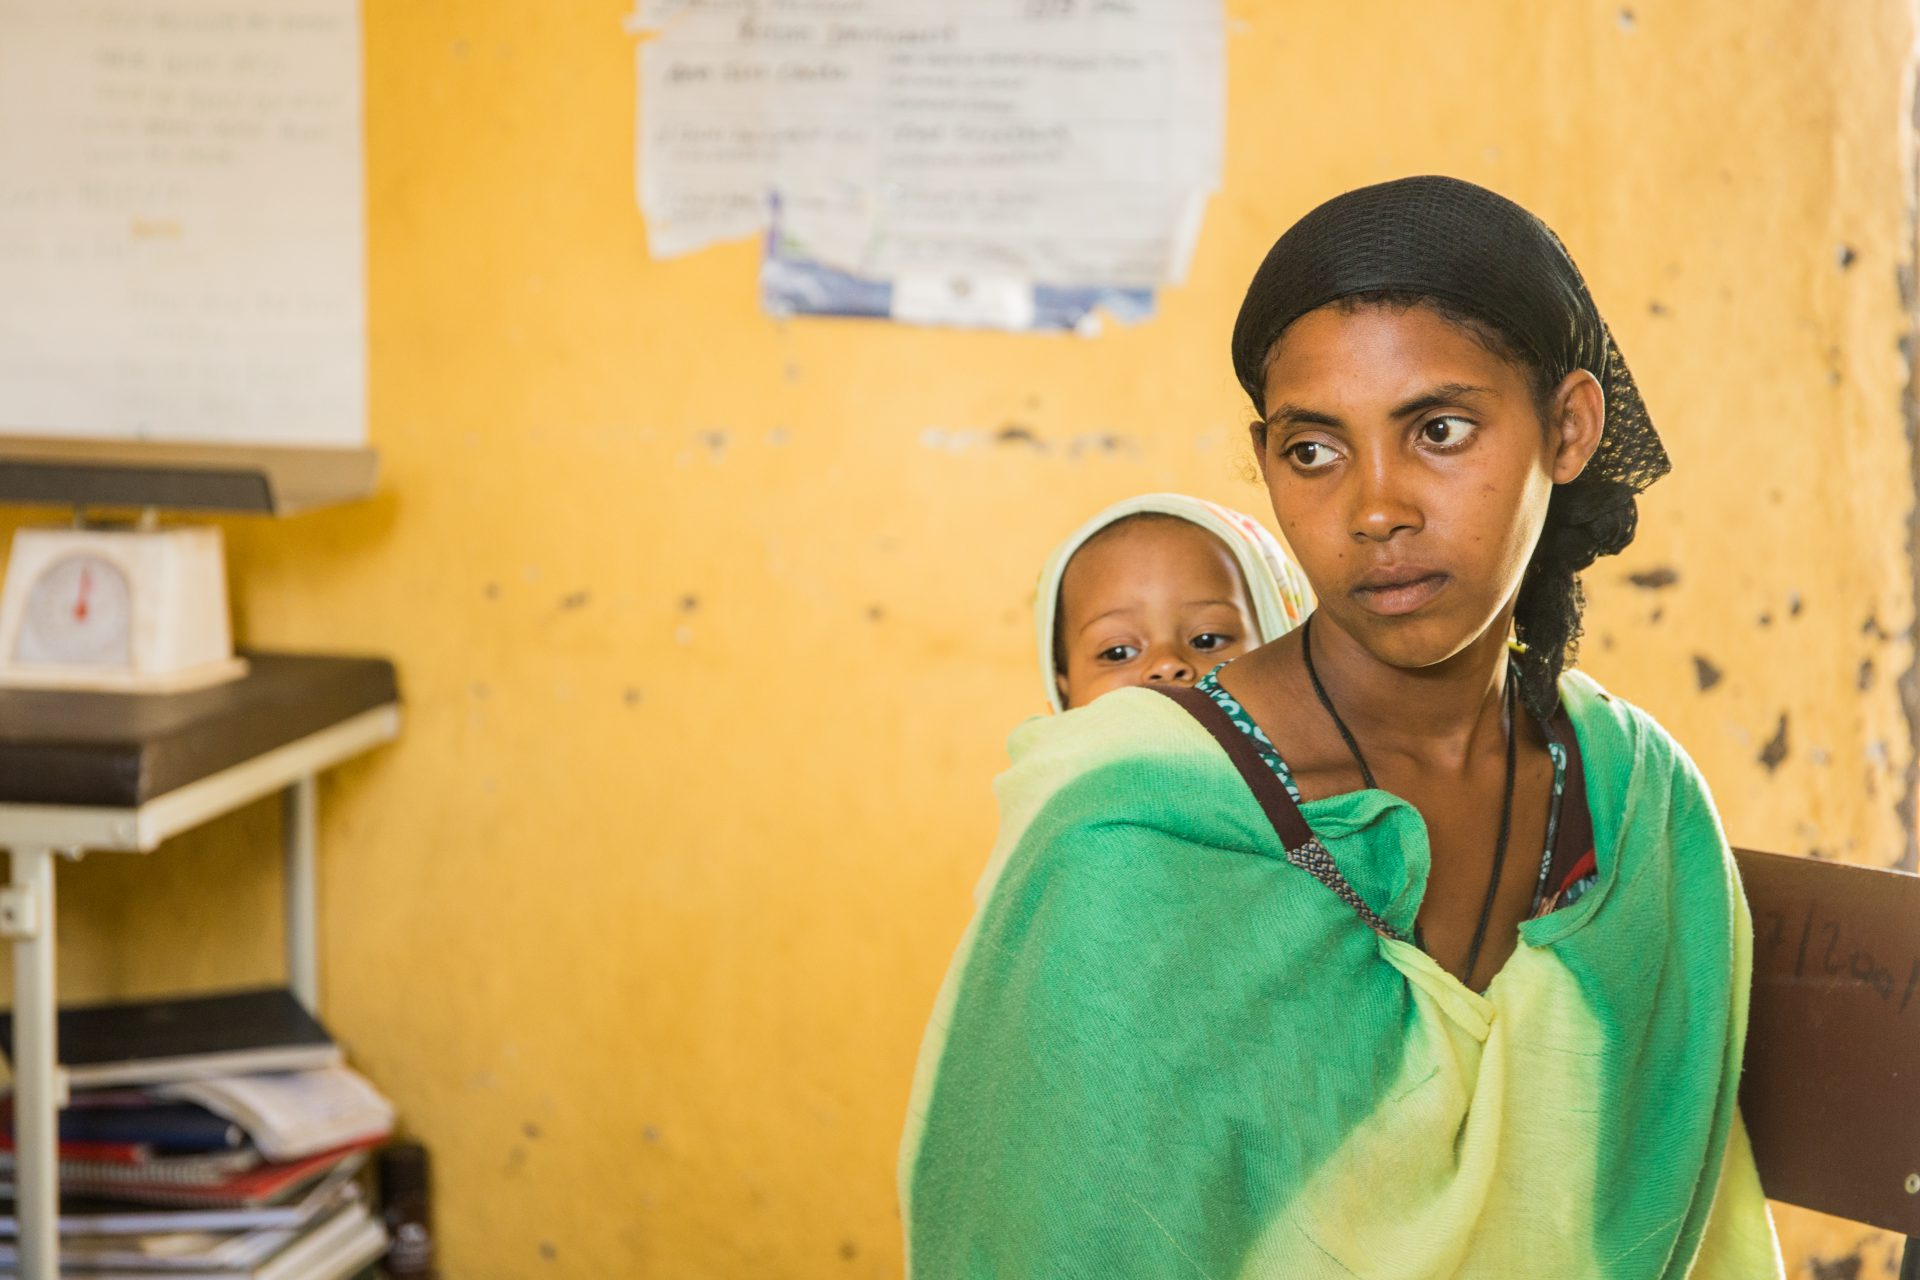 Yeshiwork Anteneh, 18, and her one year old son waiting for treatment at Yiraber Health Centre, West Gojjam, Ethiopia. ©WaterAid/Genaye Eshetu